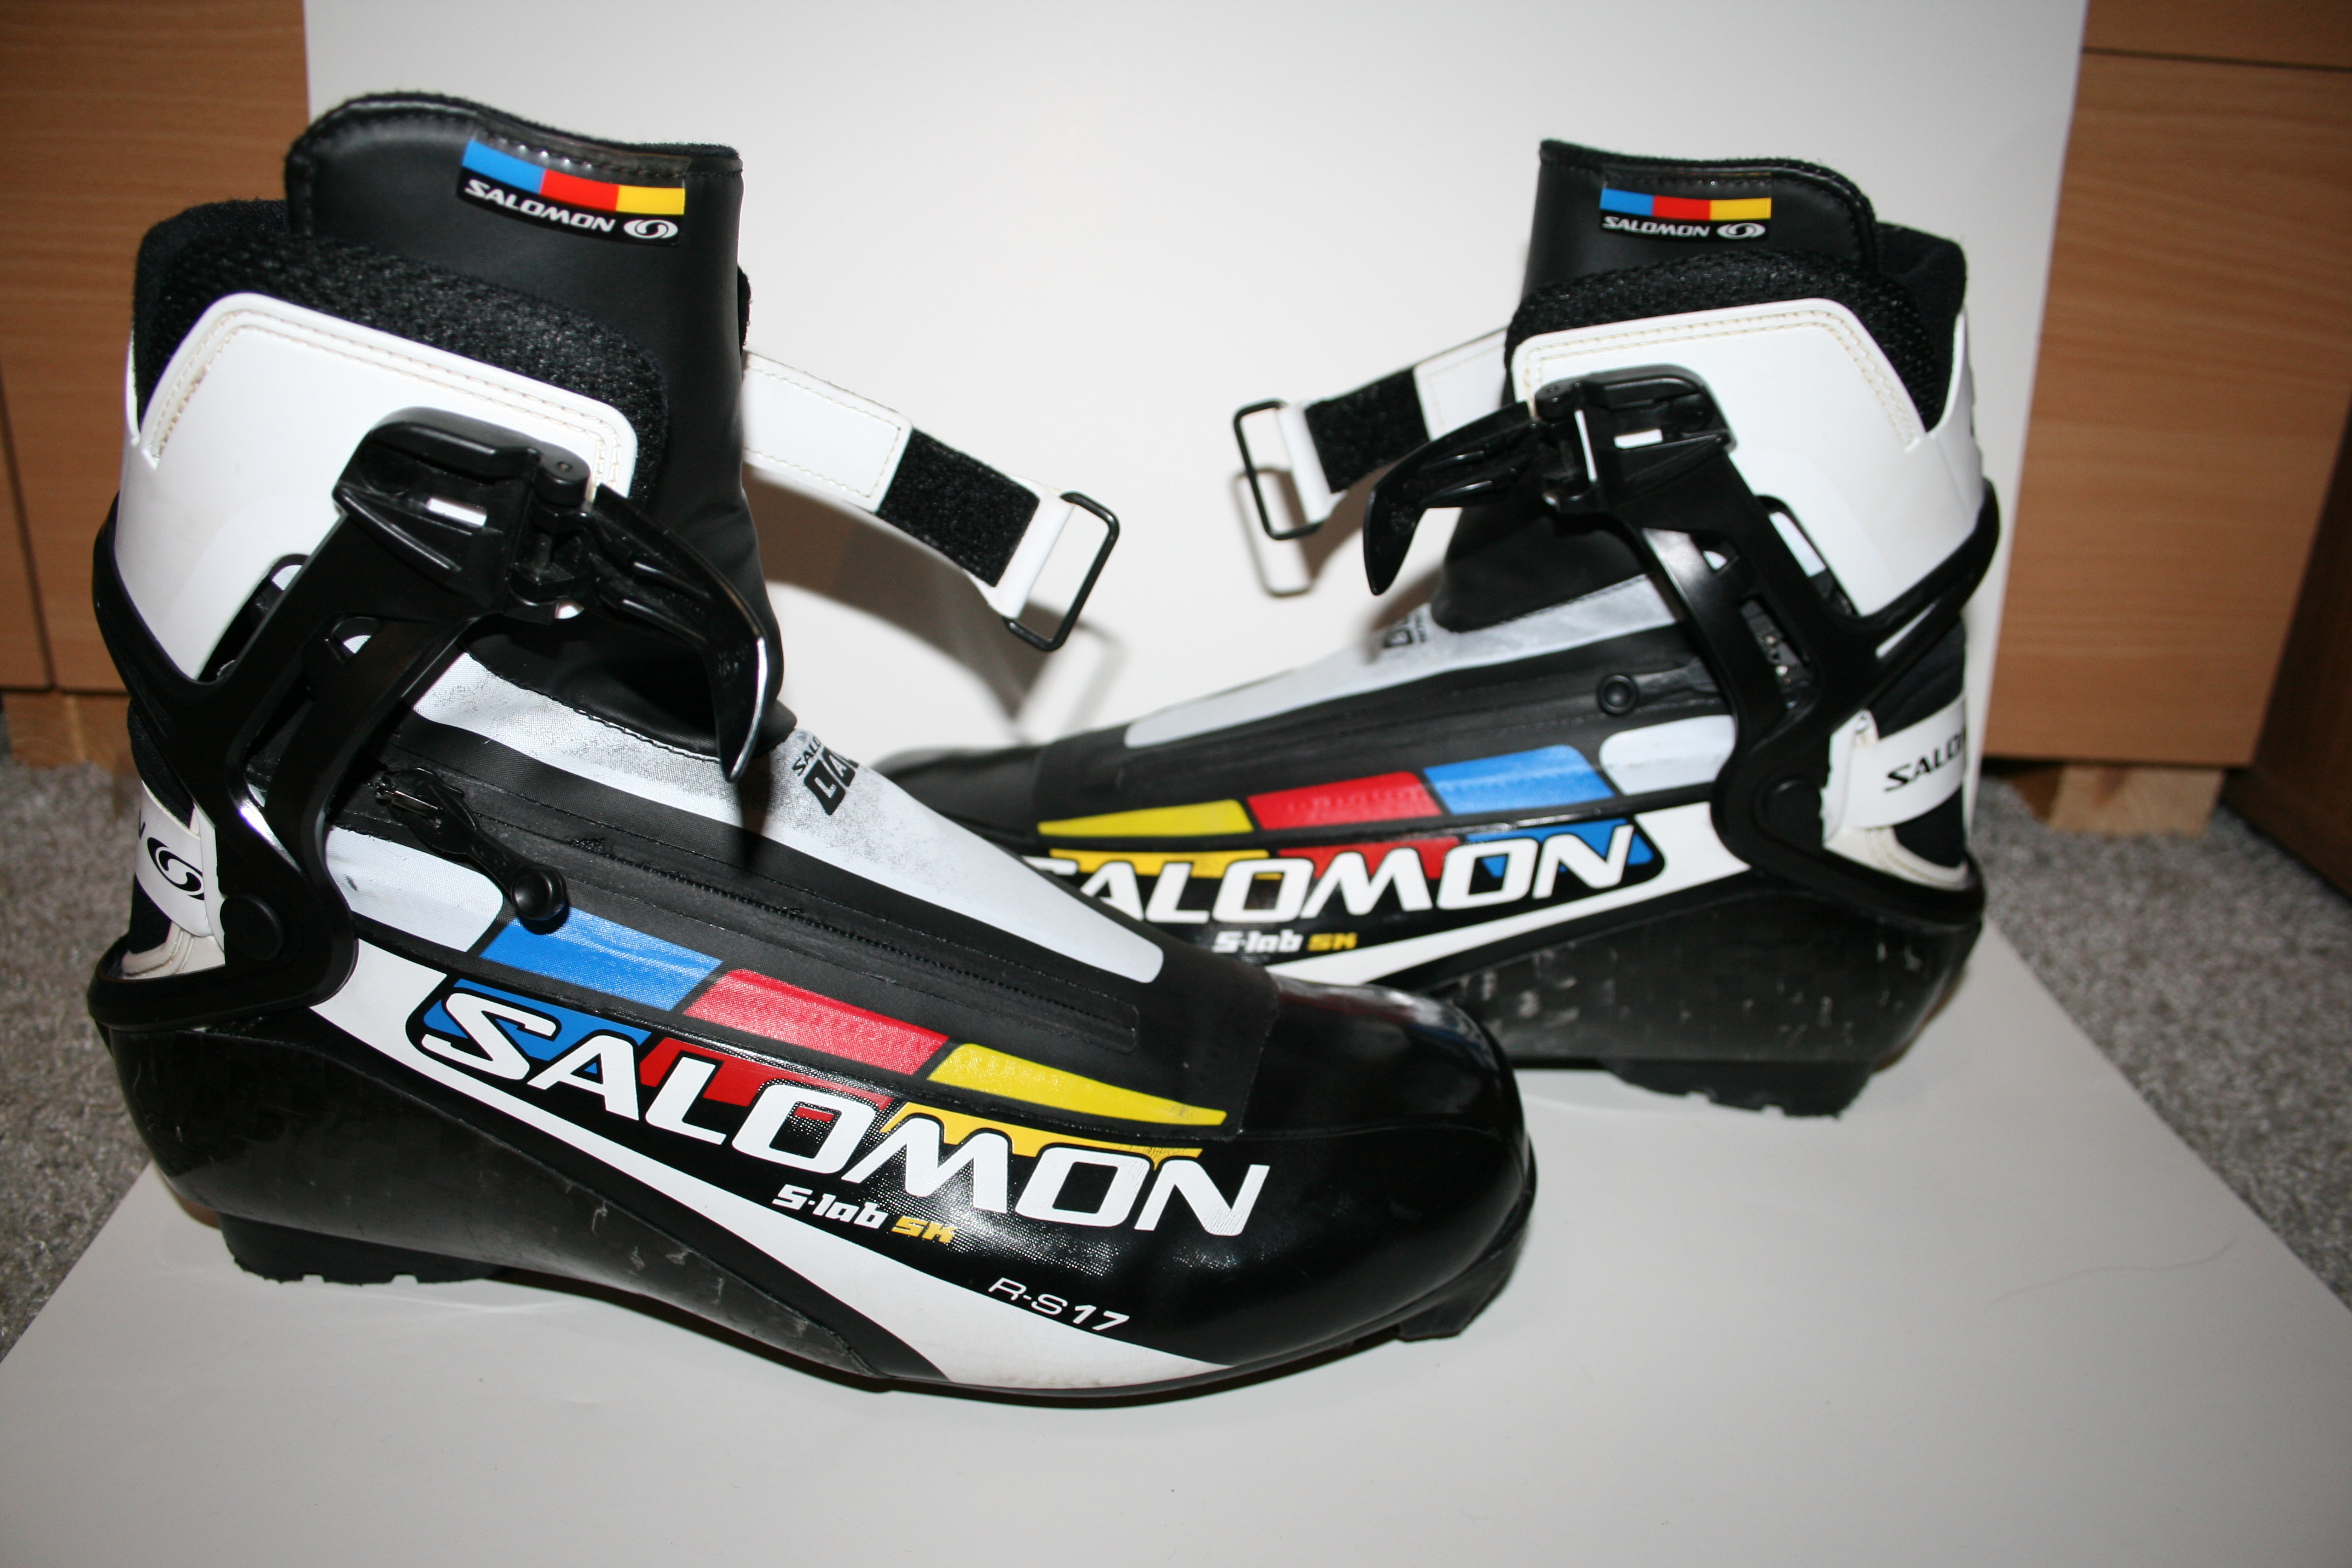 0c3271f670c Salomon S-lab skiathlon 09 10